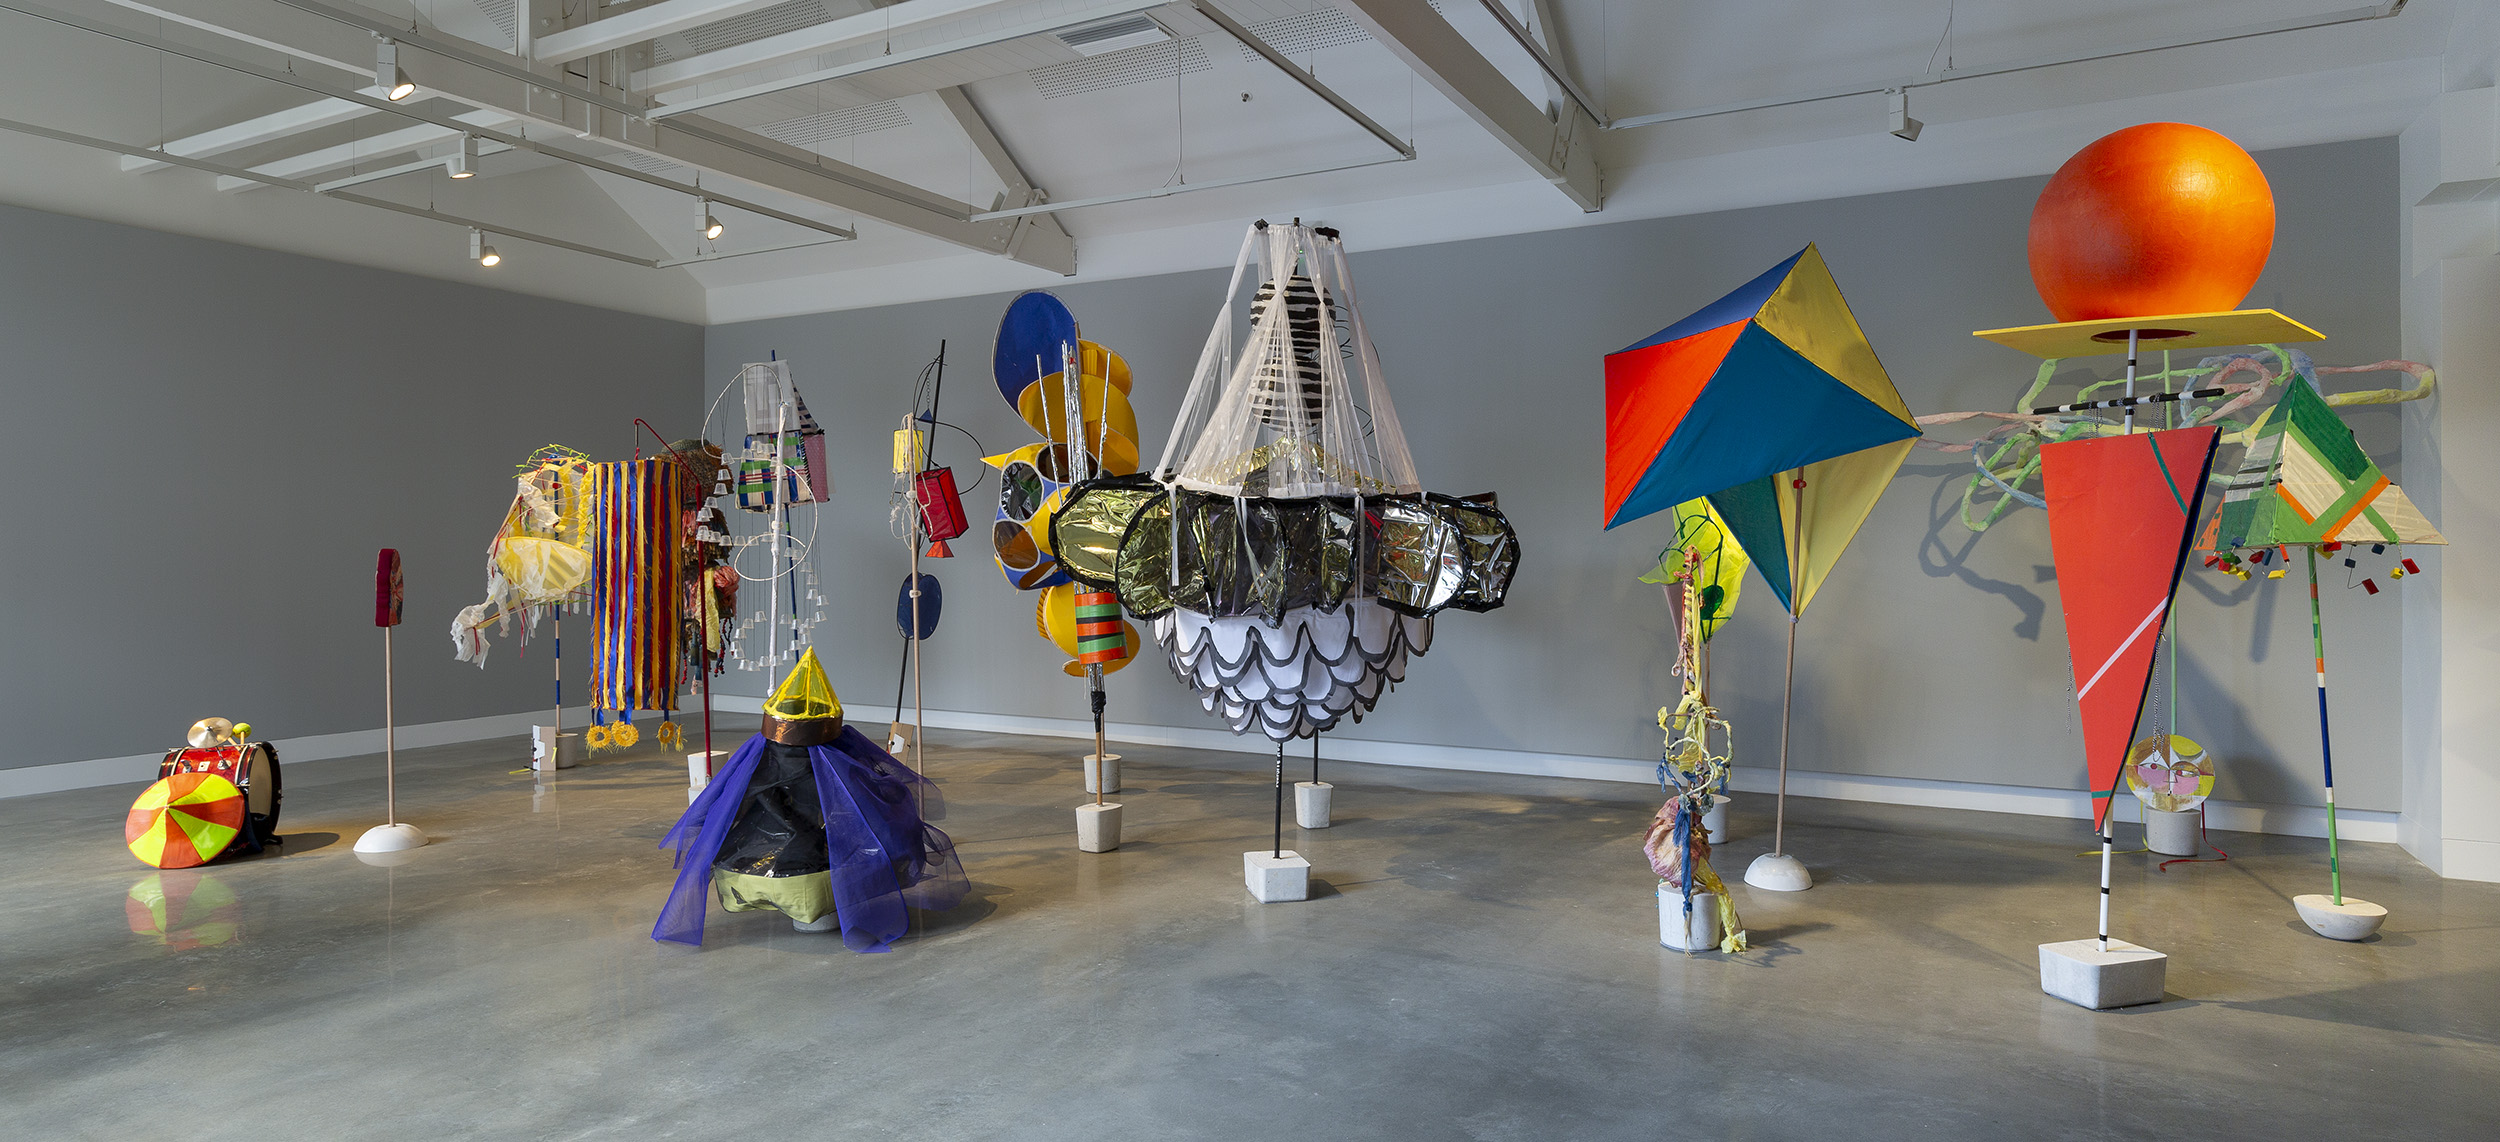 Mikala Dwyer and Justene Williams, Mondspiel (Moon Play), 2019, featuring works by students from VCA, QCA and RMIT, Bauhaus Now!, curated by Ann Stephen, Buxton Contemporary, Melbourne